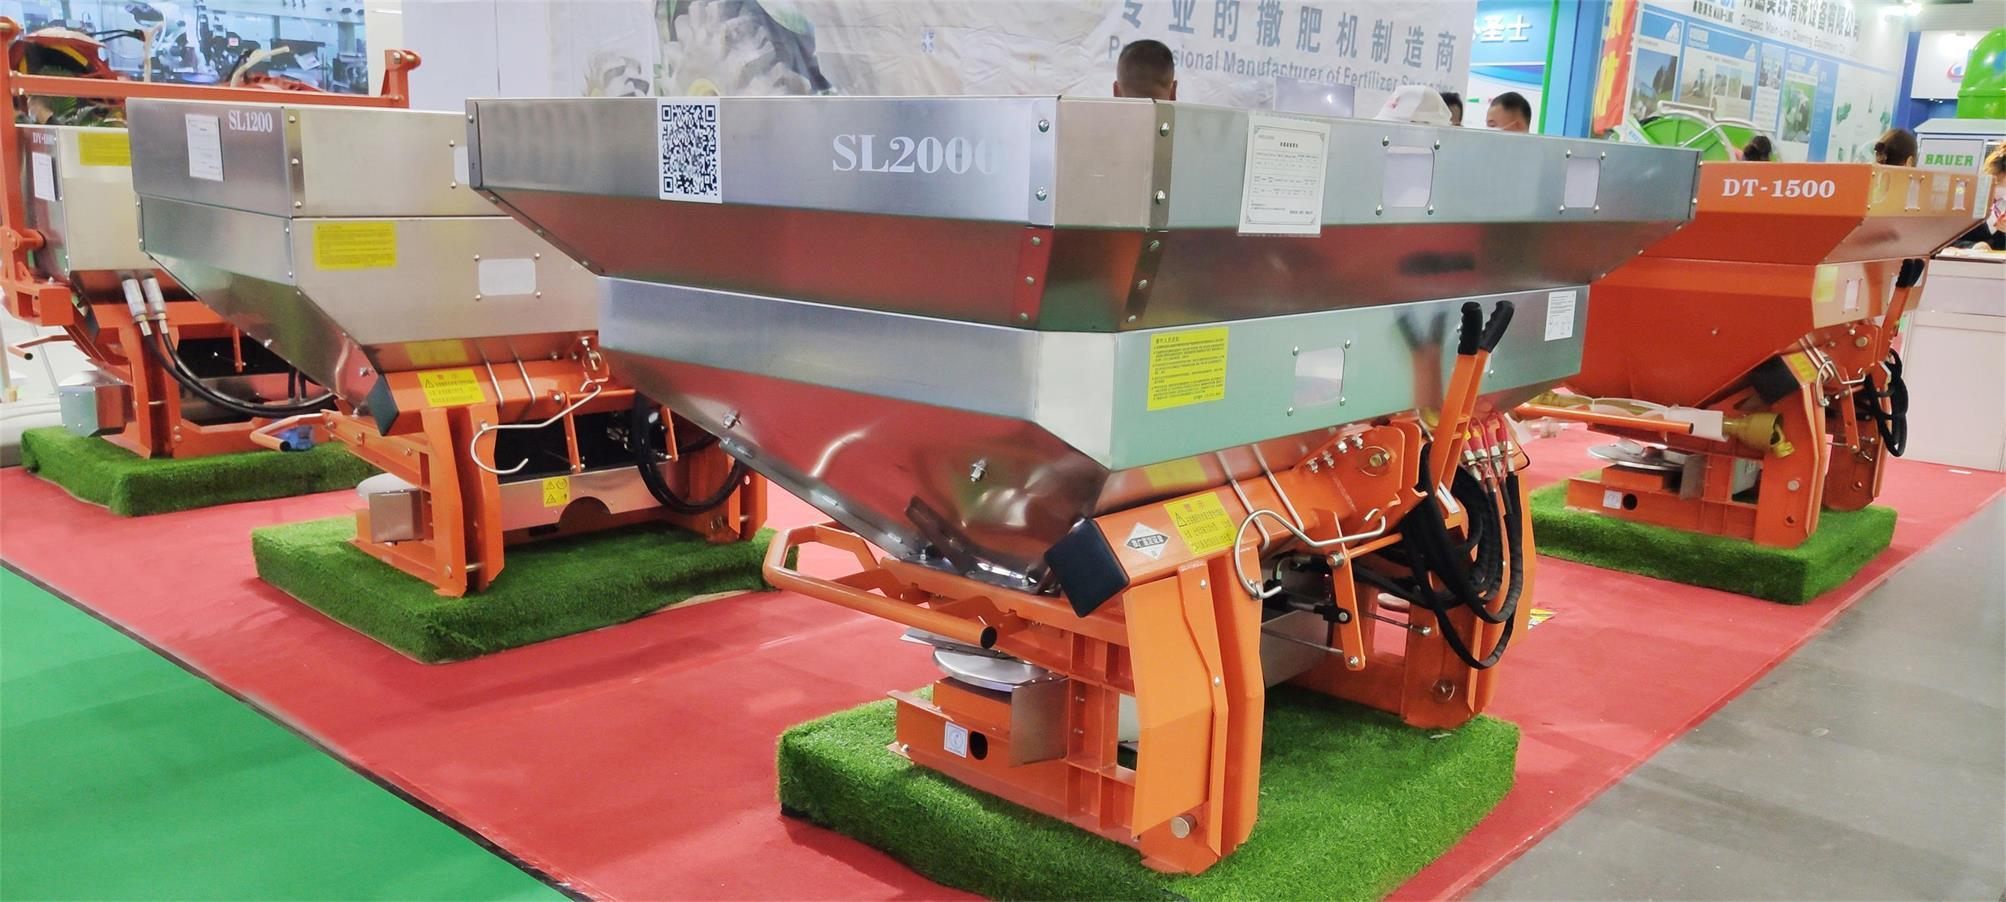 Double disc hydraulic motor drive spreader